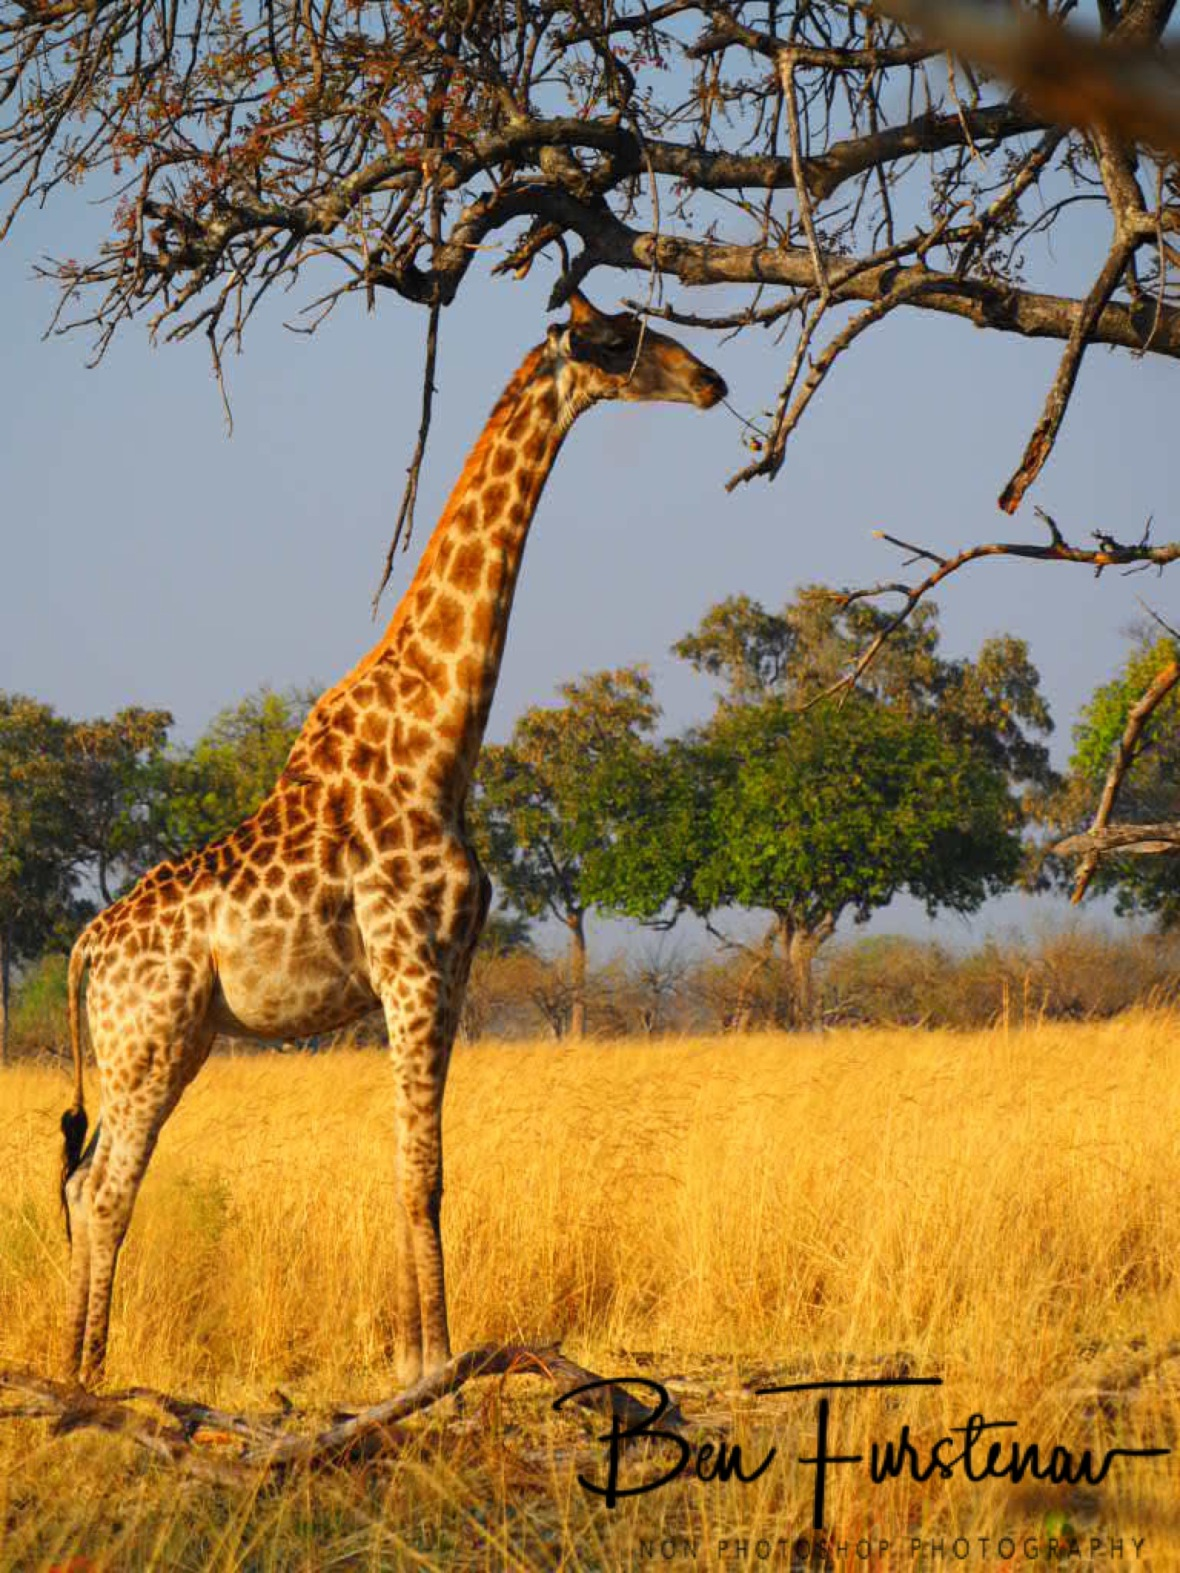 Shade is hard to find for Giraffes, Moremi National Park, Botswana